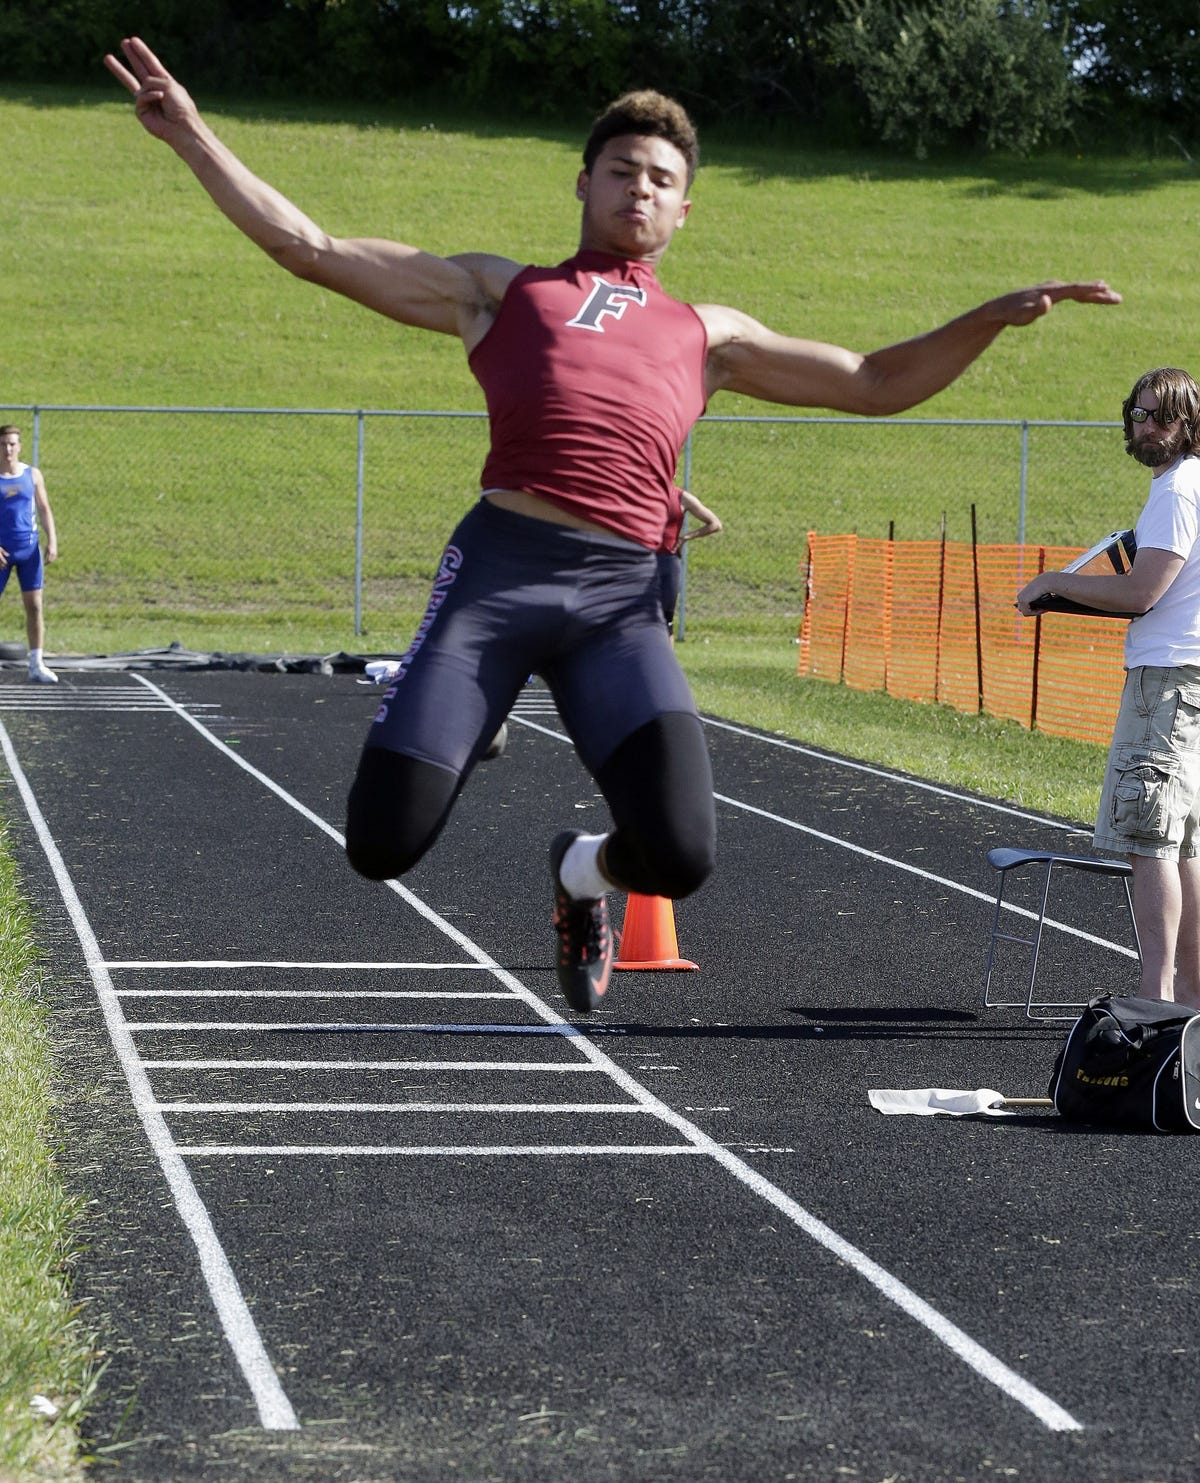 Track and Field: Fond du Lac preparing for state meet